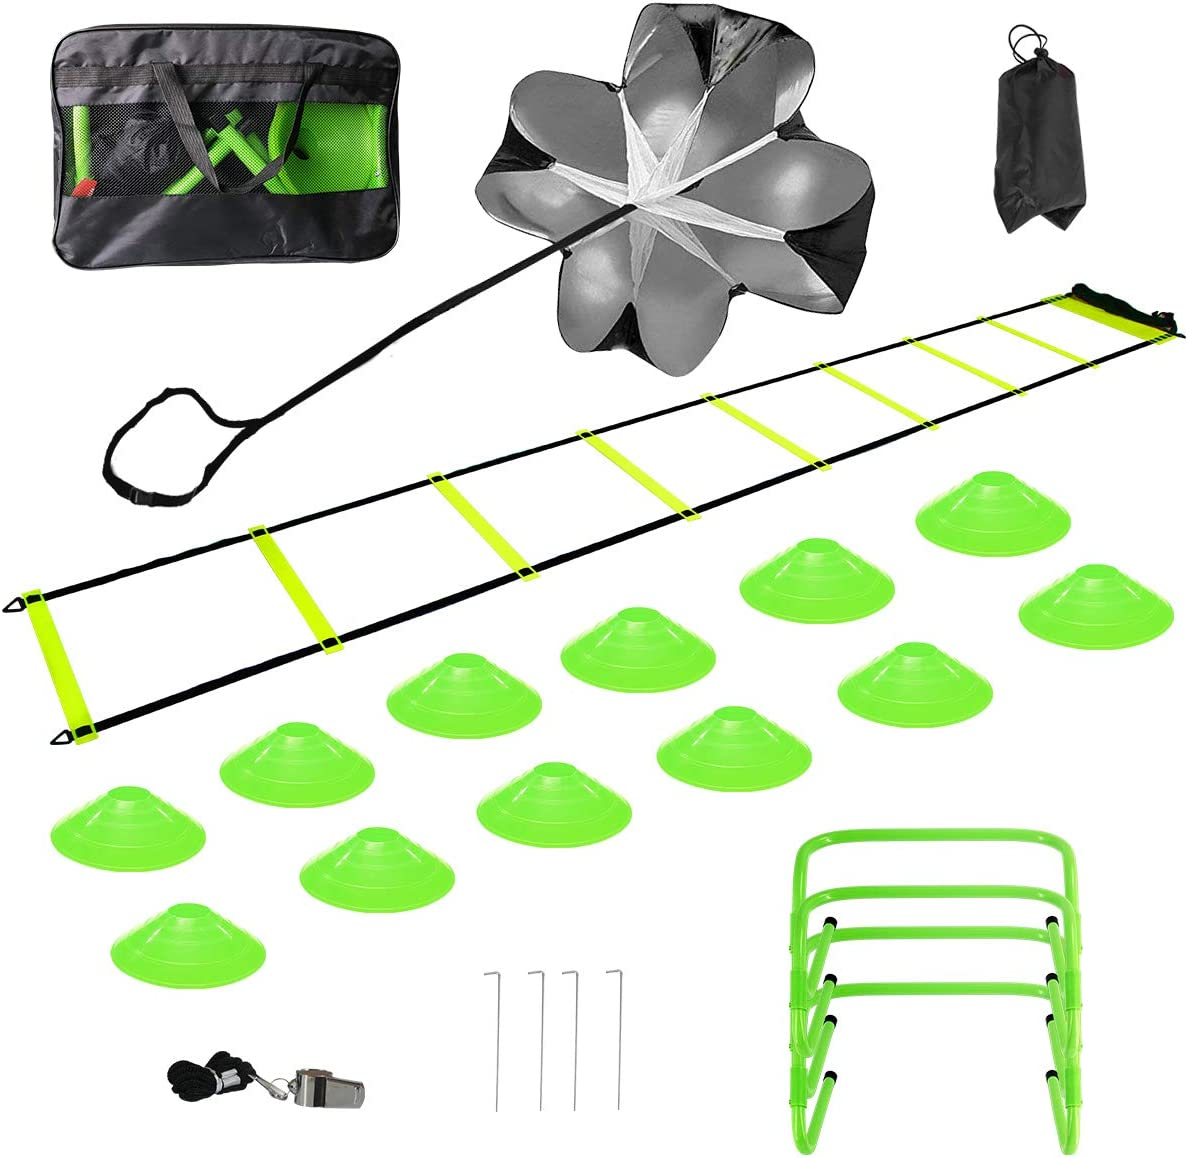 pingqian Speed Agility Training Set, Includes Agility Ladder, Resistance Parachute, Whistle, 12 Agility Disc Cones,4 Hurdles-Exercise Equipment Boost Fitness & Increase Quick Footwork for All Sports